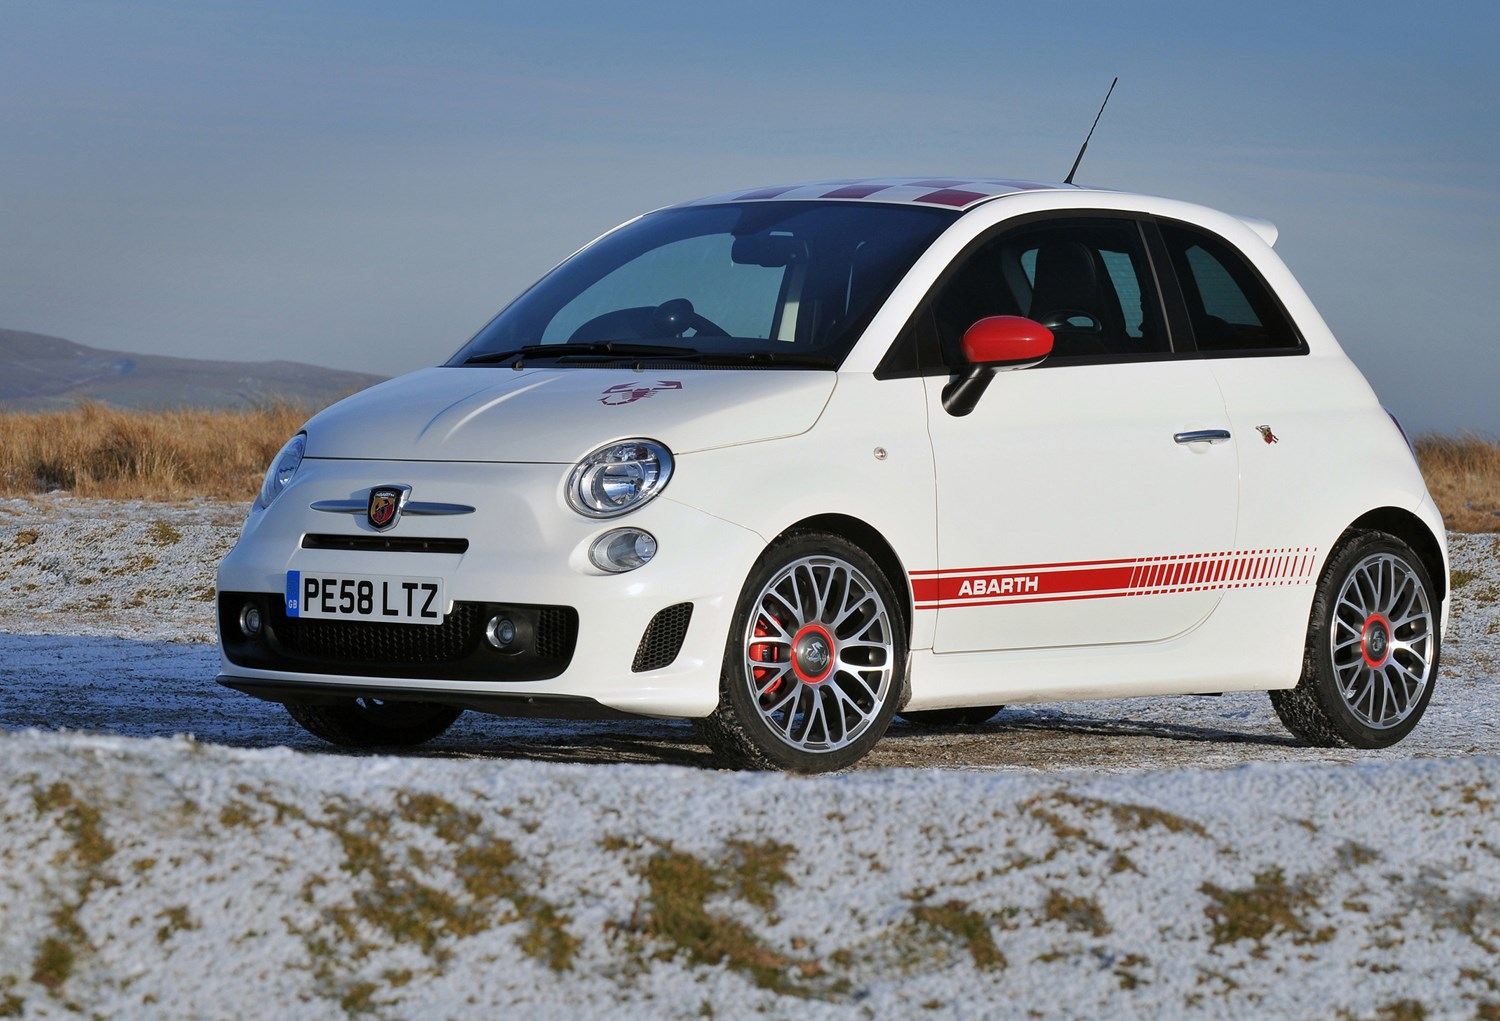 fiat abarth 500 esseesse for sale with 500 on 17064000 Fiat 500 Abarth 695 Esseesse Anni 70 in addition Abarth 500 MTA Esseesse Fussmatten Velour Originalzubehoer MOPAR besides Abarth 500 Esseesse V Mini Cooper S additionally Dimensions Fiat Qubo 6ac59ea5f3a408f3 additionally 5.